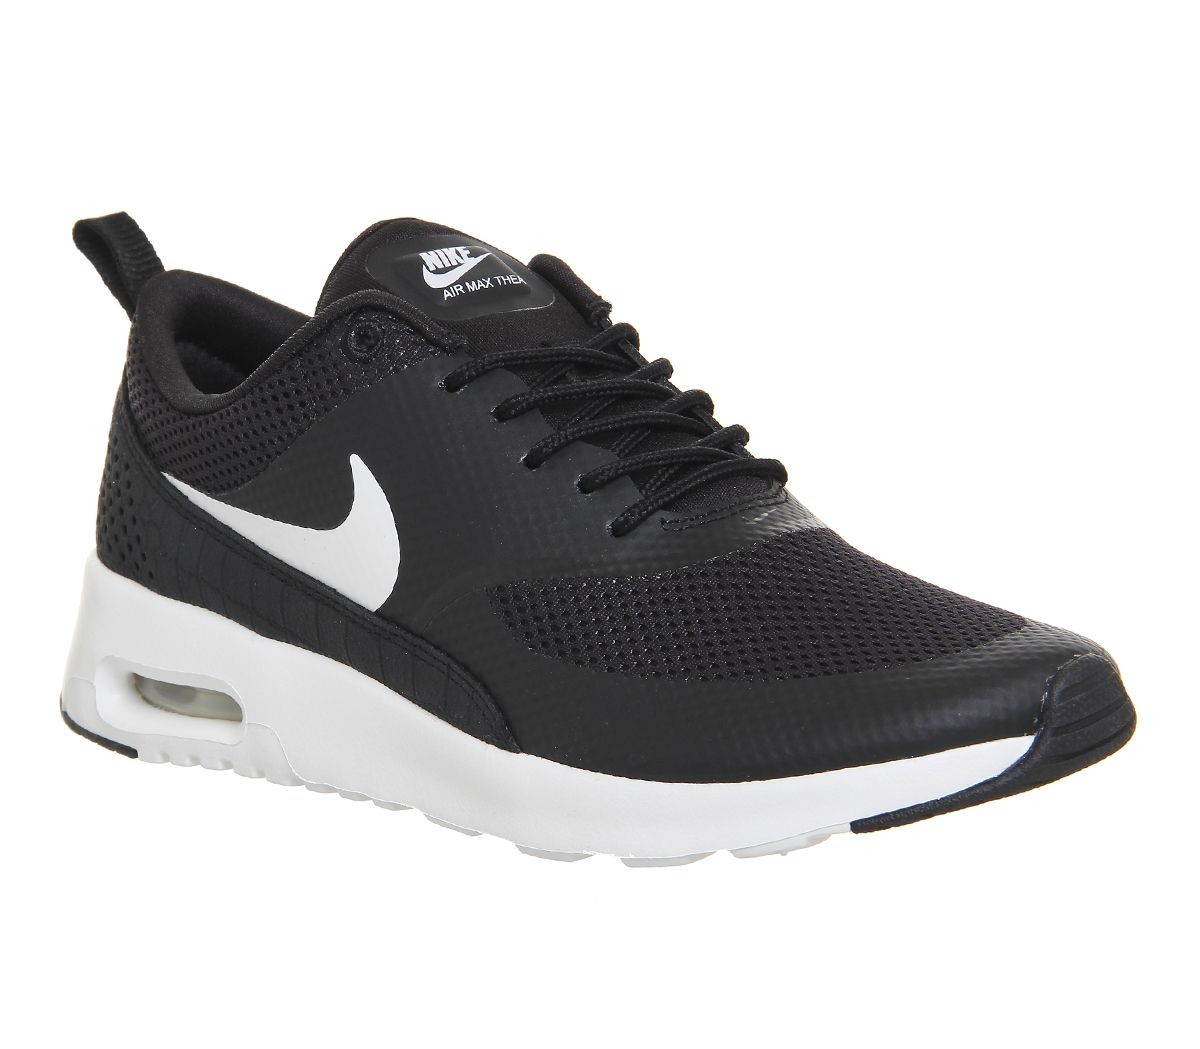 buy popular 3f9aa cce36 Nike Air Max Thea Black White - junior